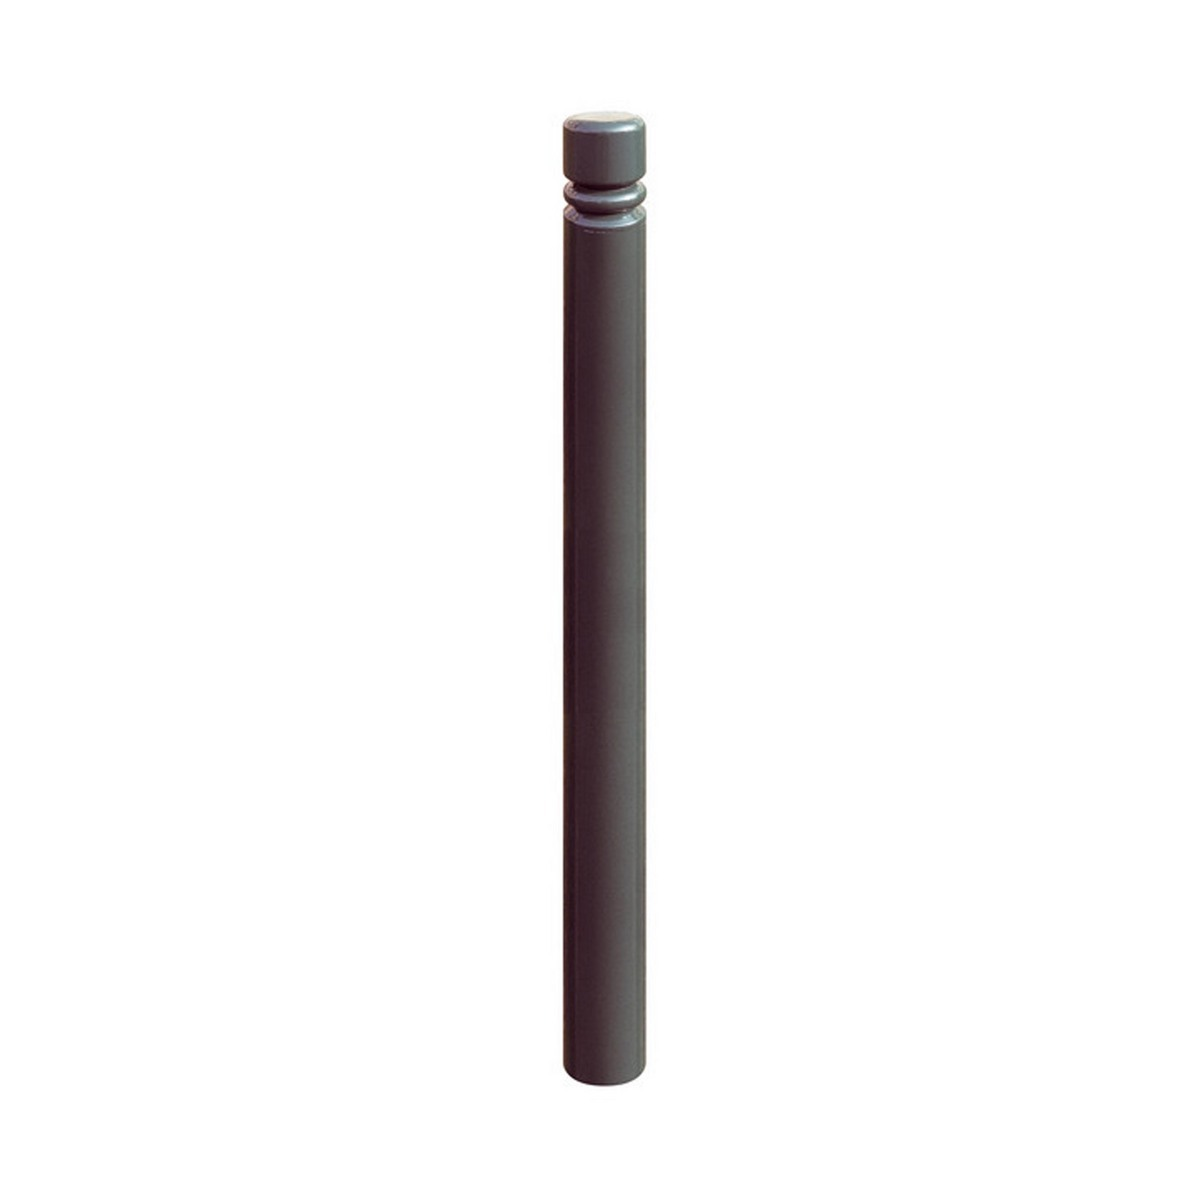 Bollard Steel - 5 Year Warranty ideal for both Urbane and residential use. image